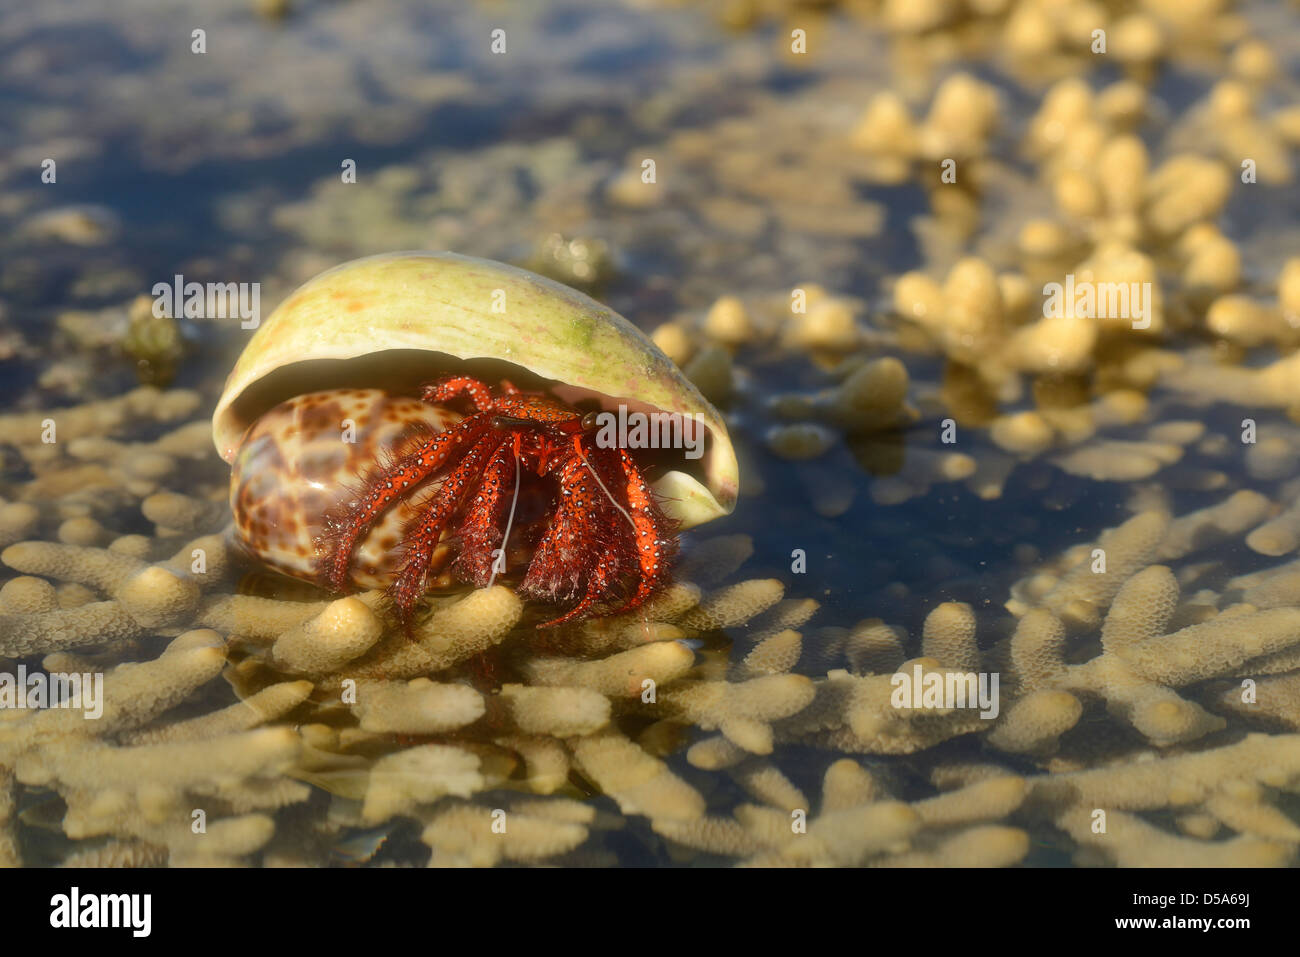 White-spotted Hermit Crab (Dardanus megistos) resting on coral at low tide, Queensland, Australia, November - Stock Image